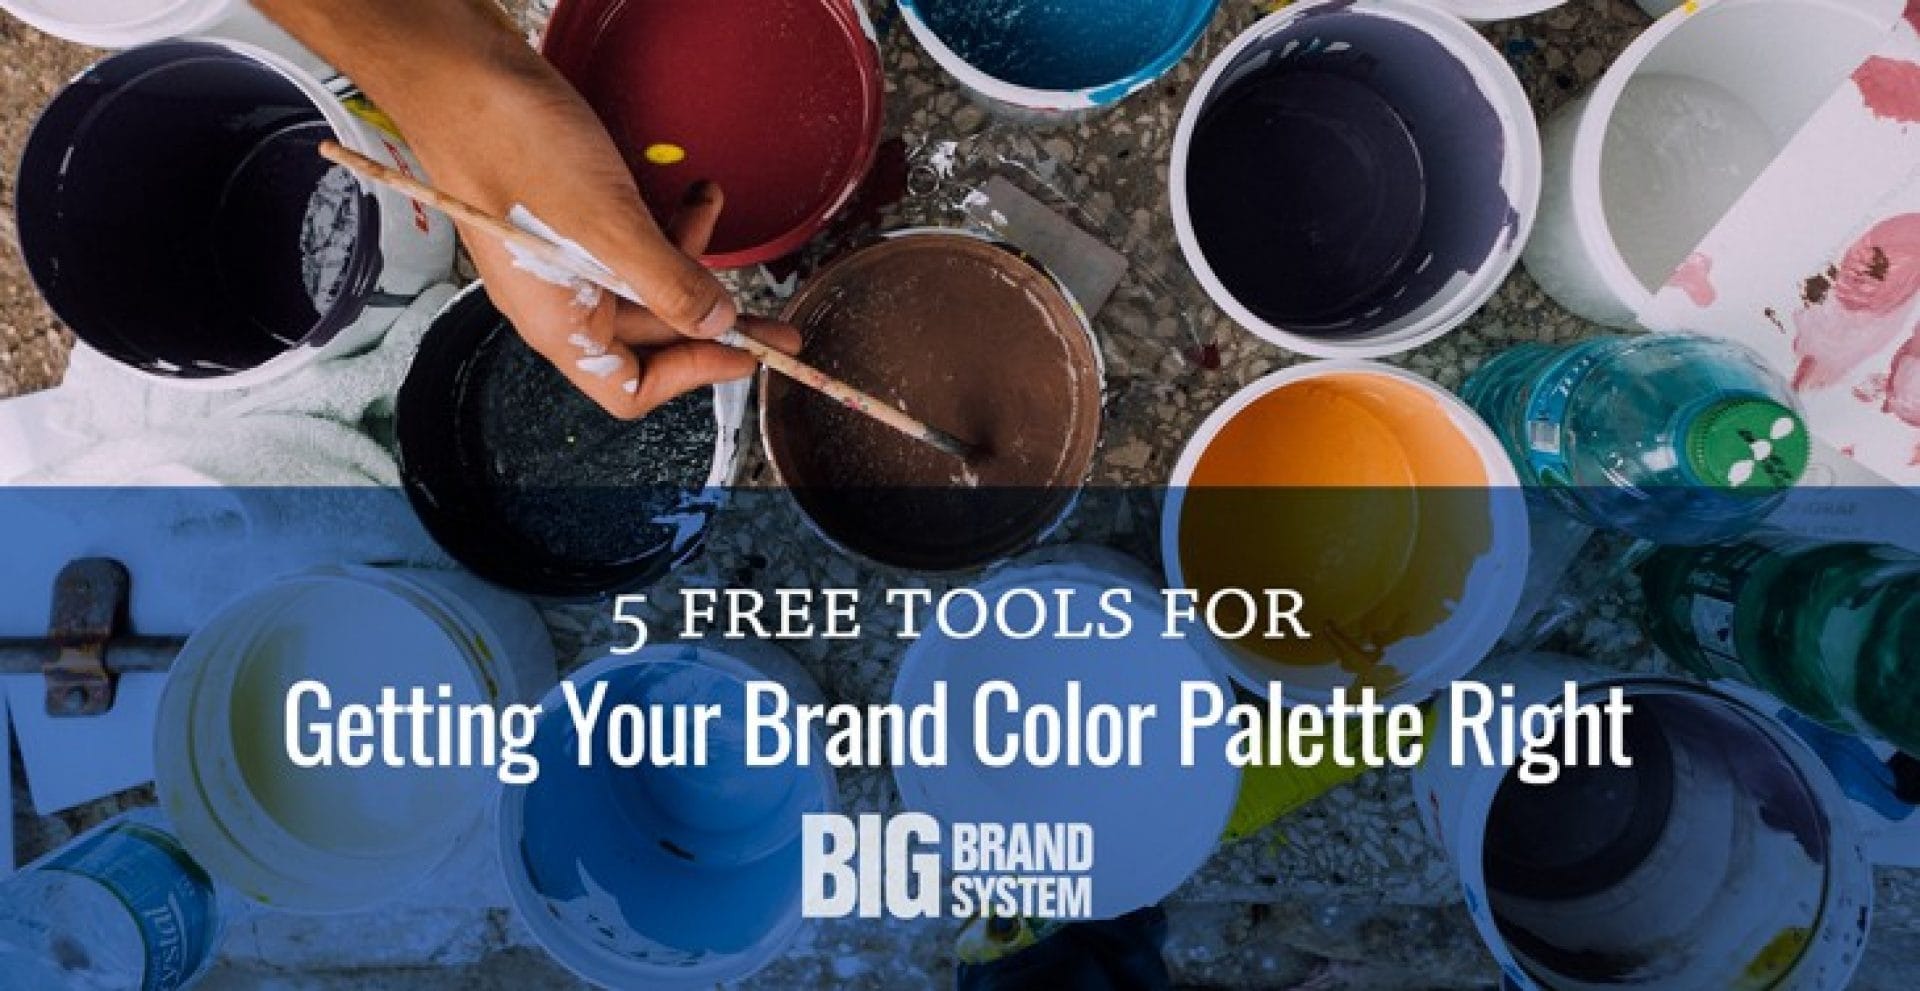 5 free tools for getting your brand color palette right